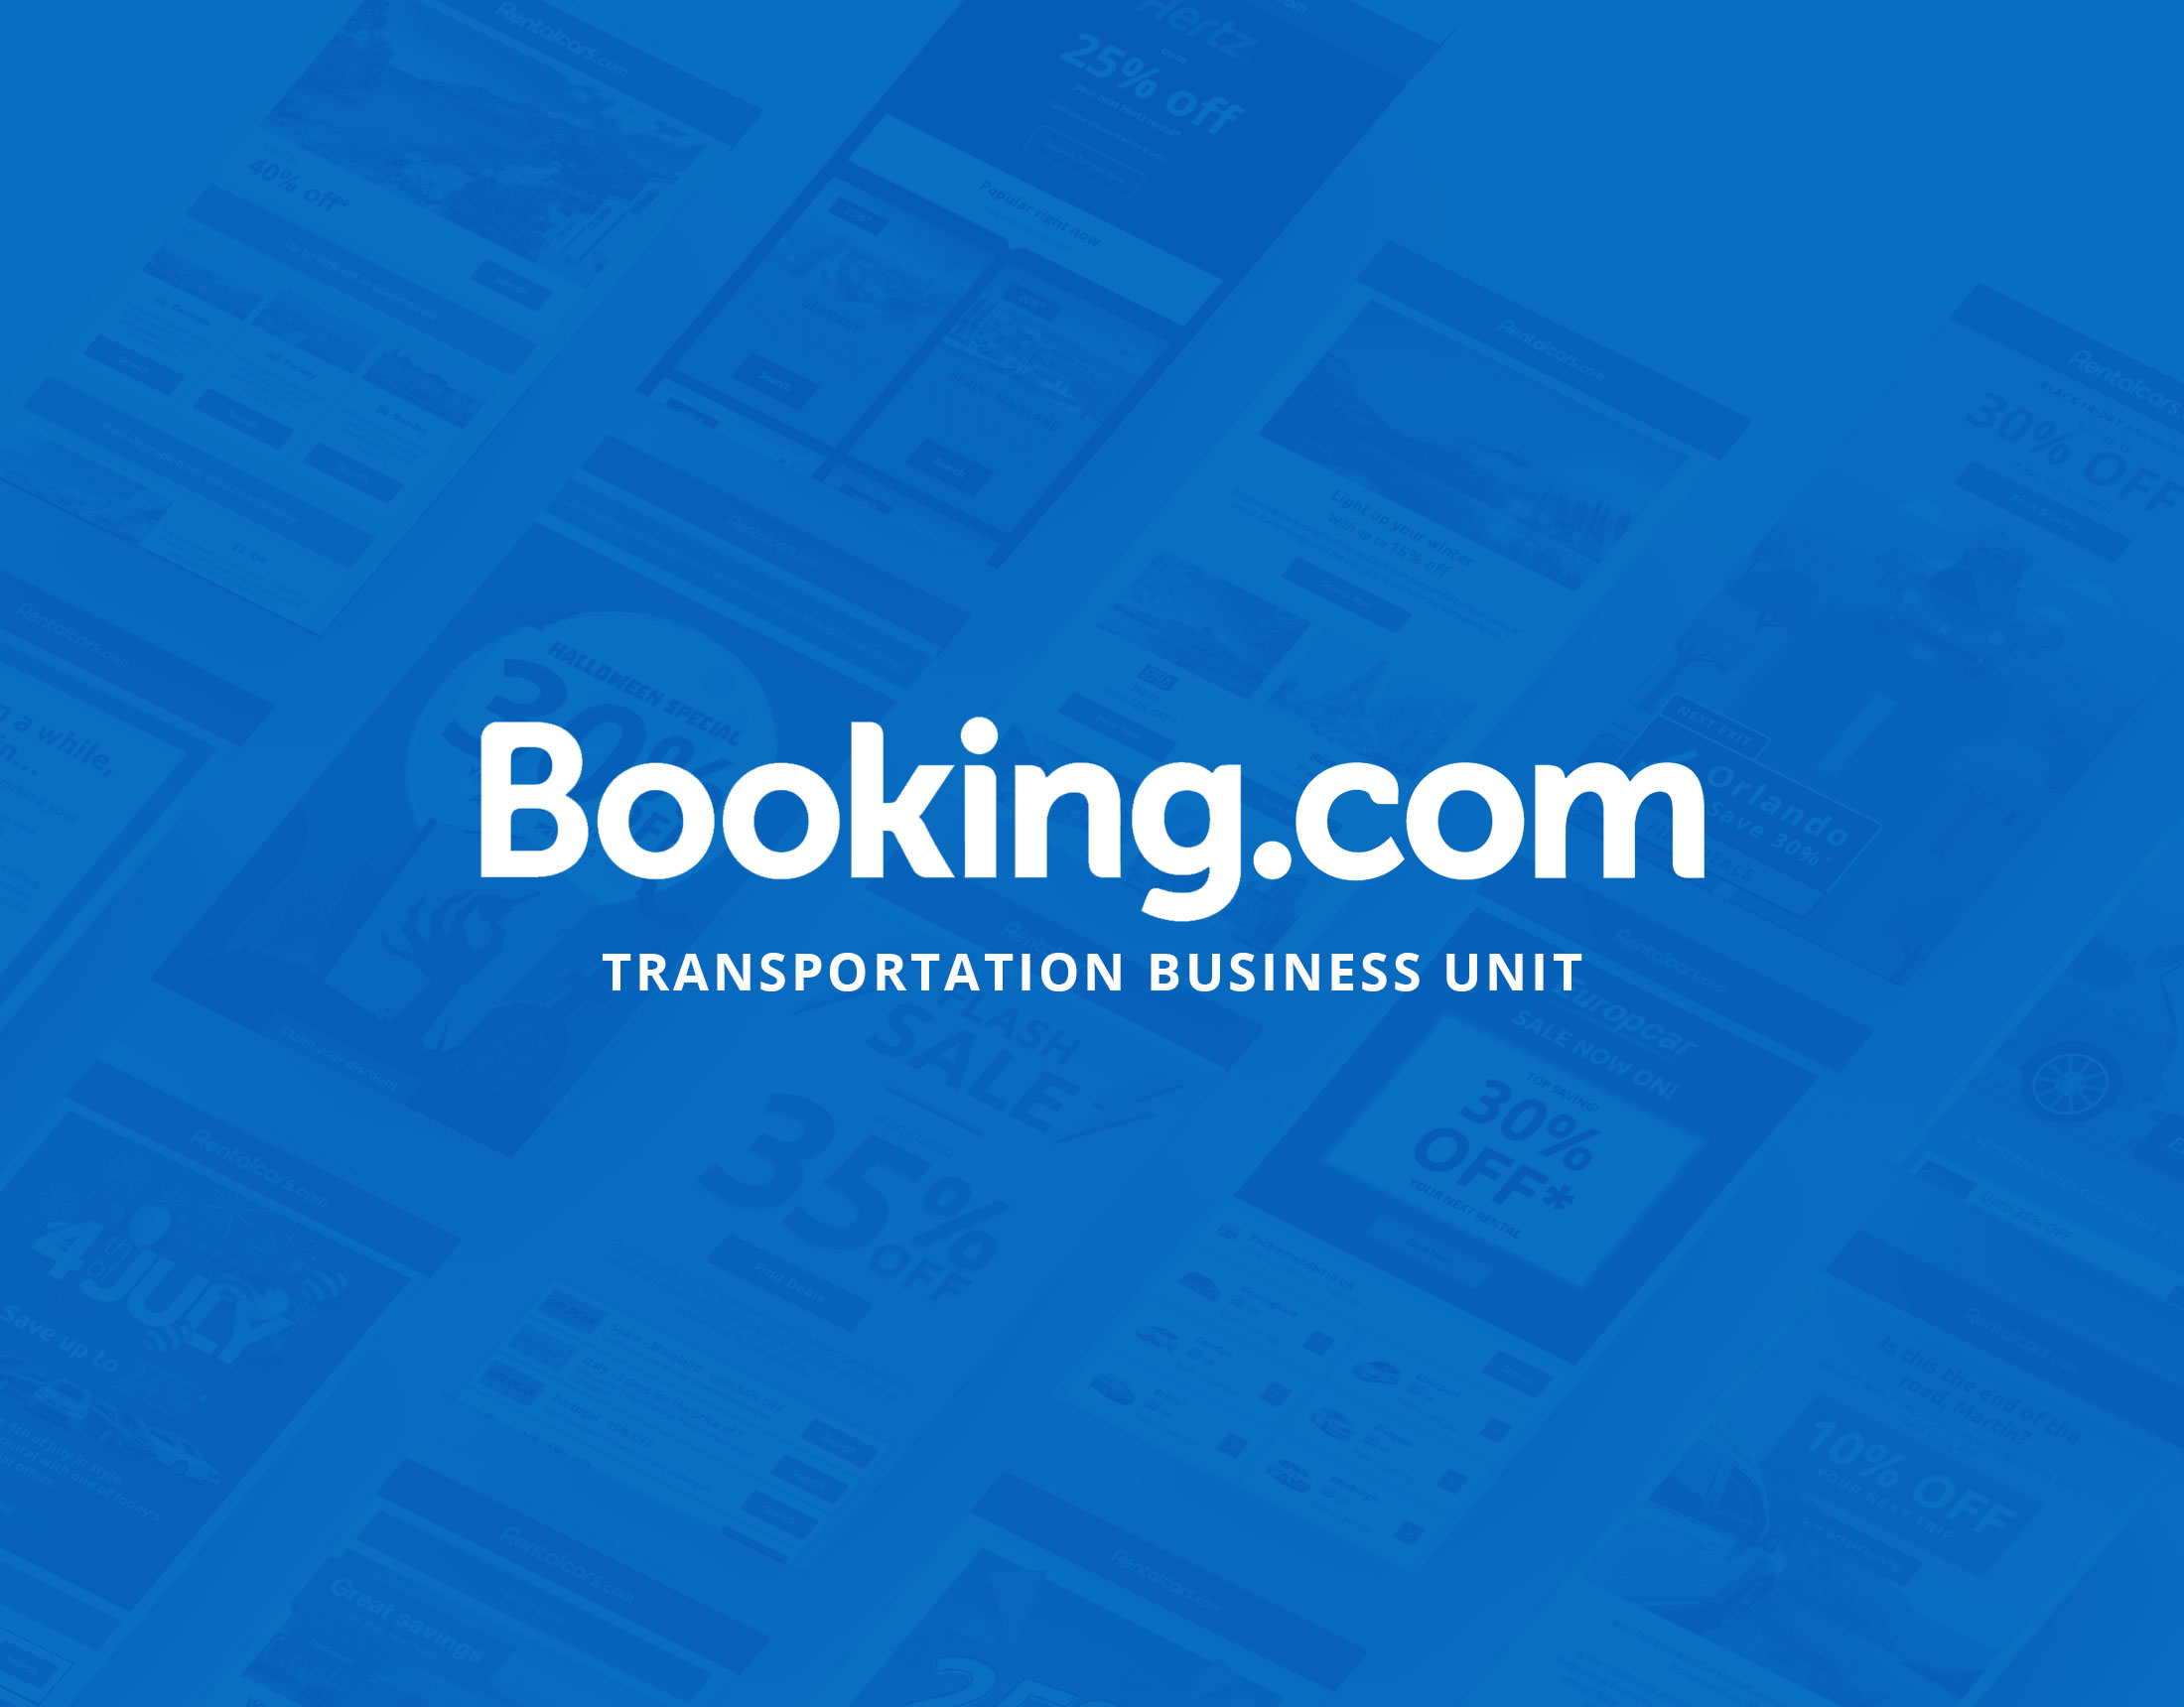 Booking.com Transportation Business Unit